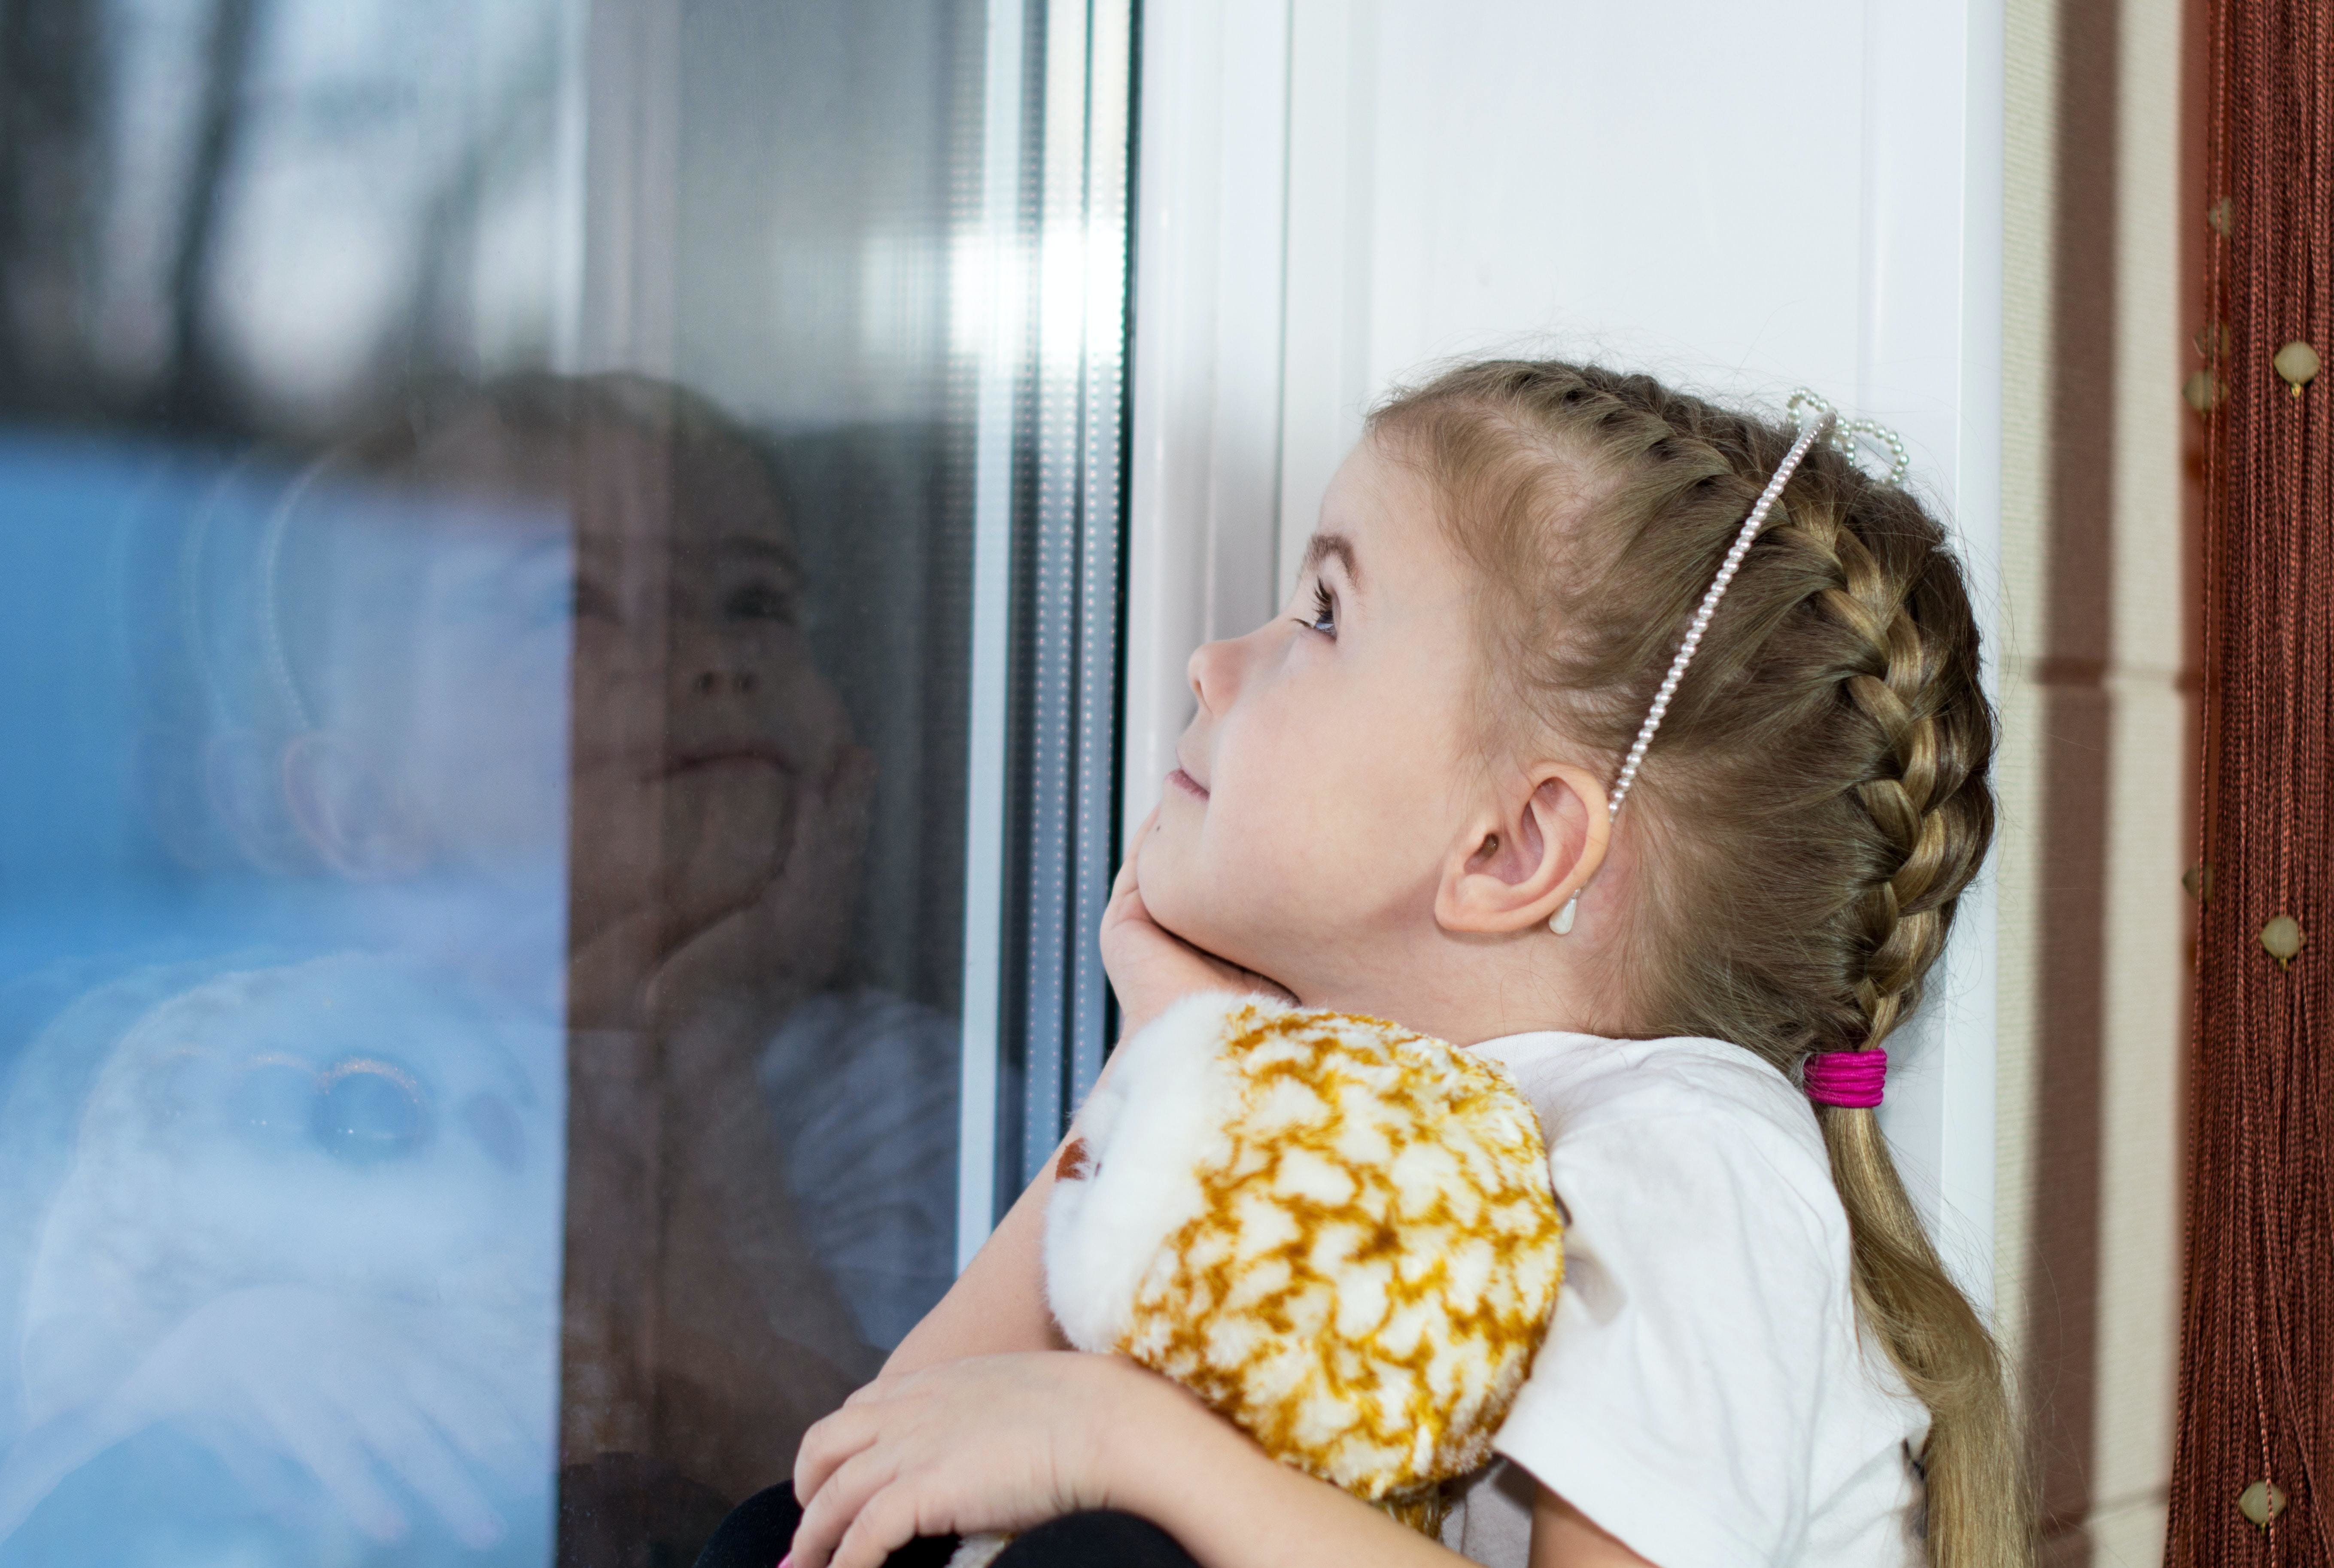 A little girl looking out of the window, lost in a daydream.